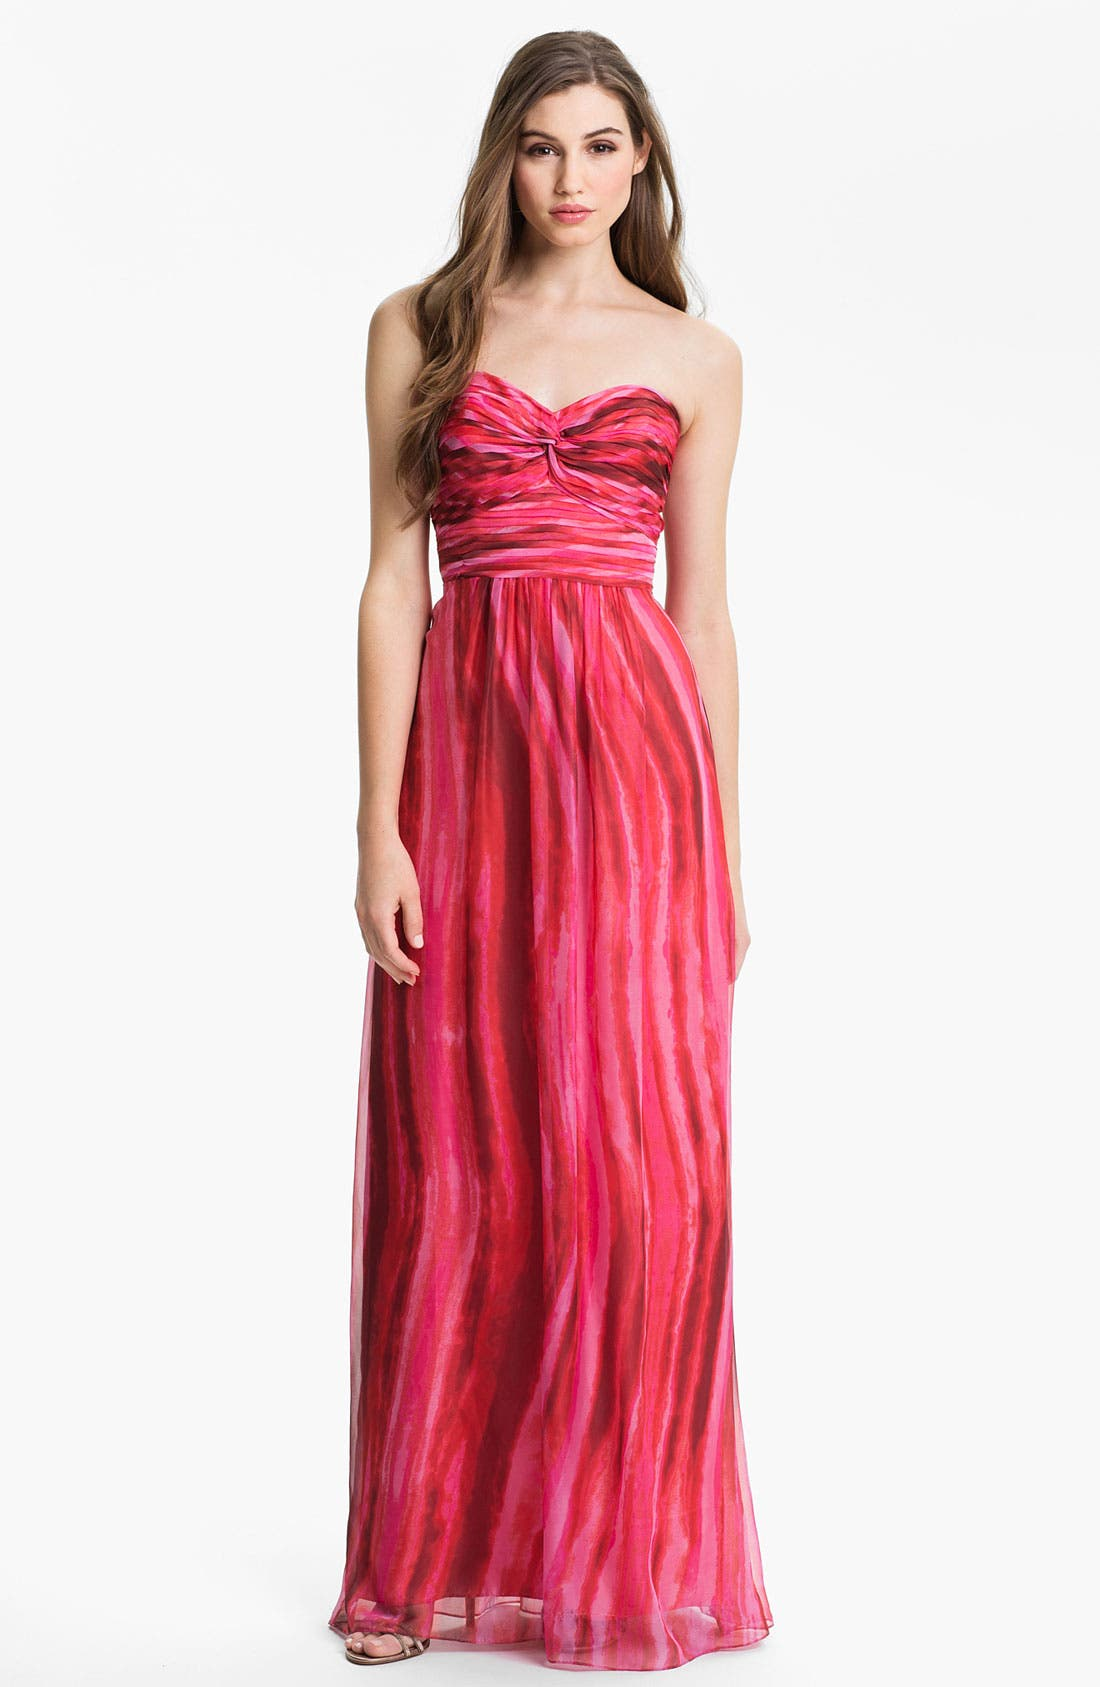 Alternate Image 1 Selected - Laundry by Shelli Segal Strapless Twist Front Chiffon Gown